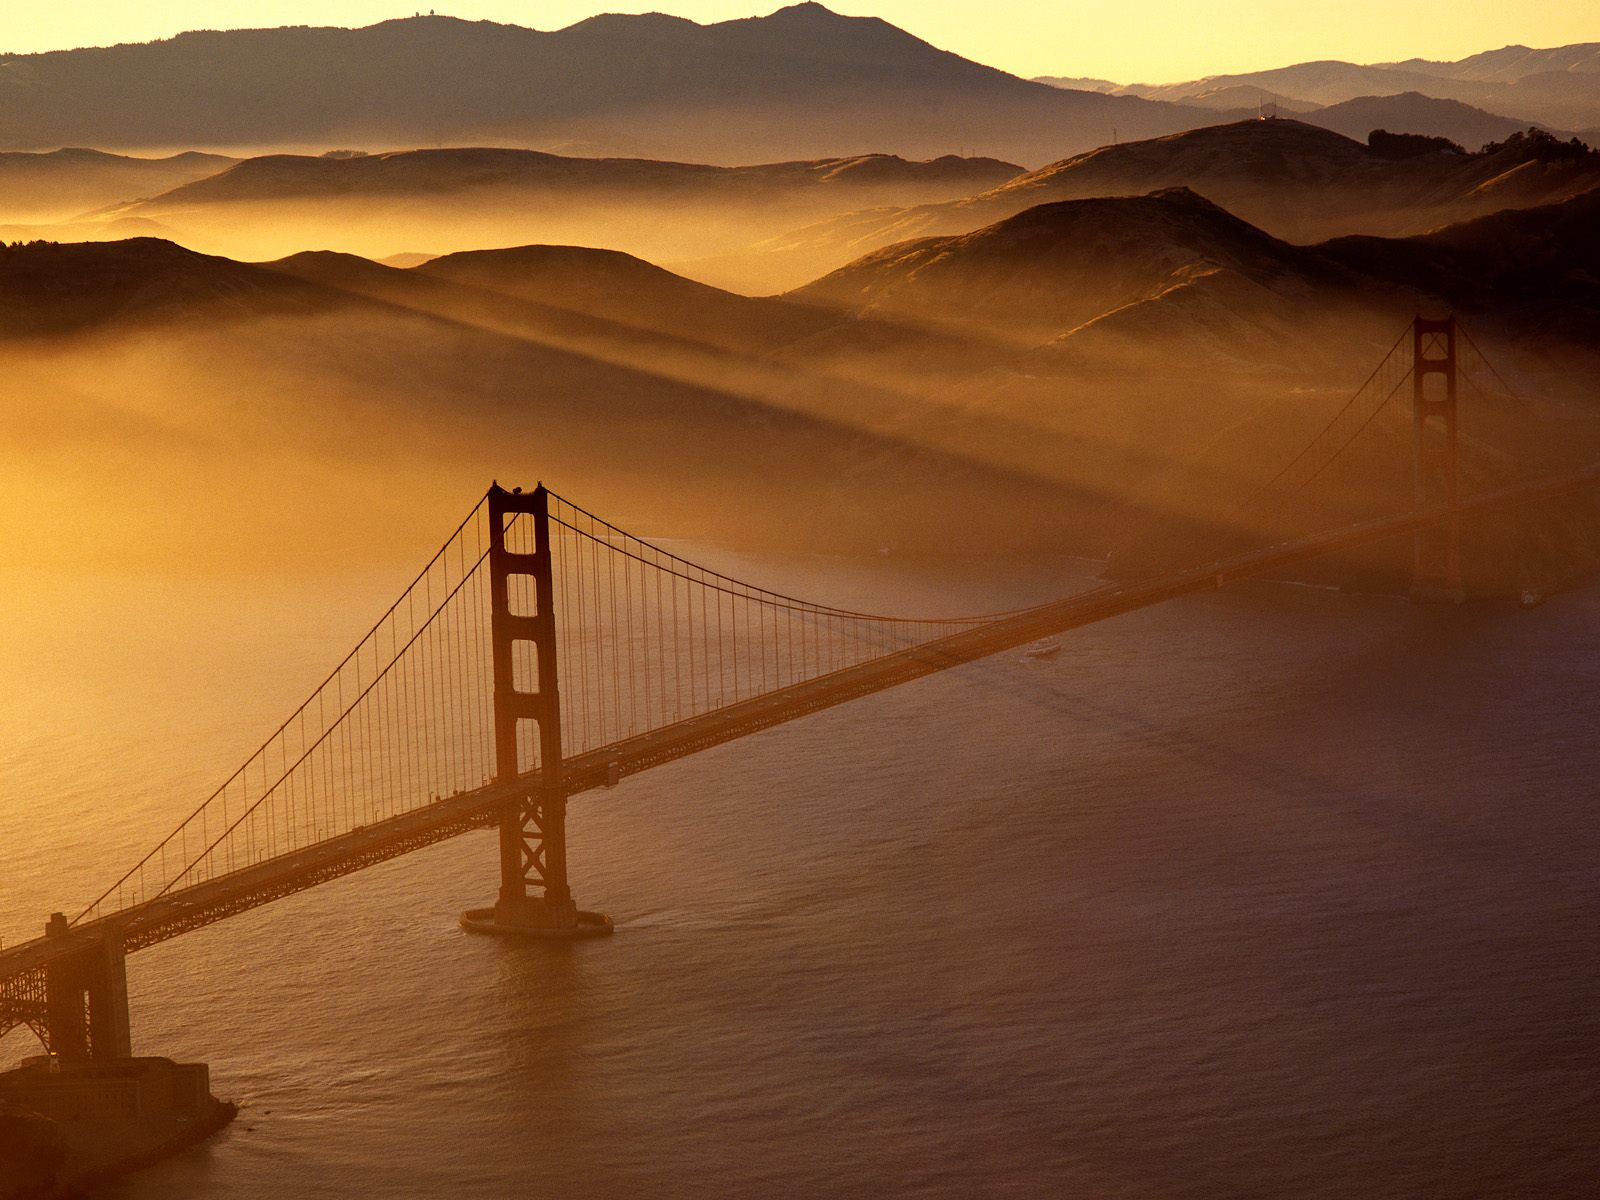 Golden Gate Bridge, Marin Headlands, San Francisco, California